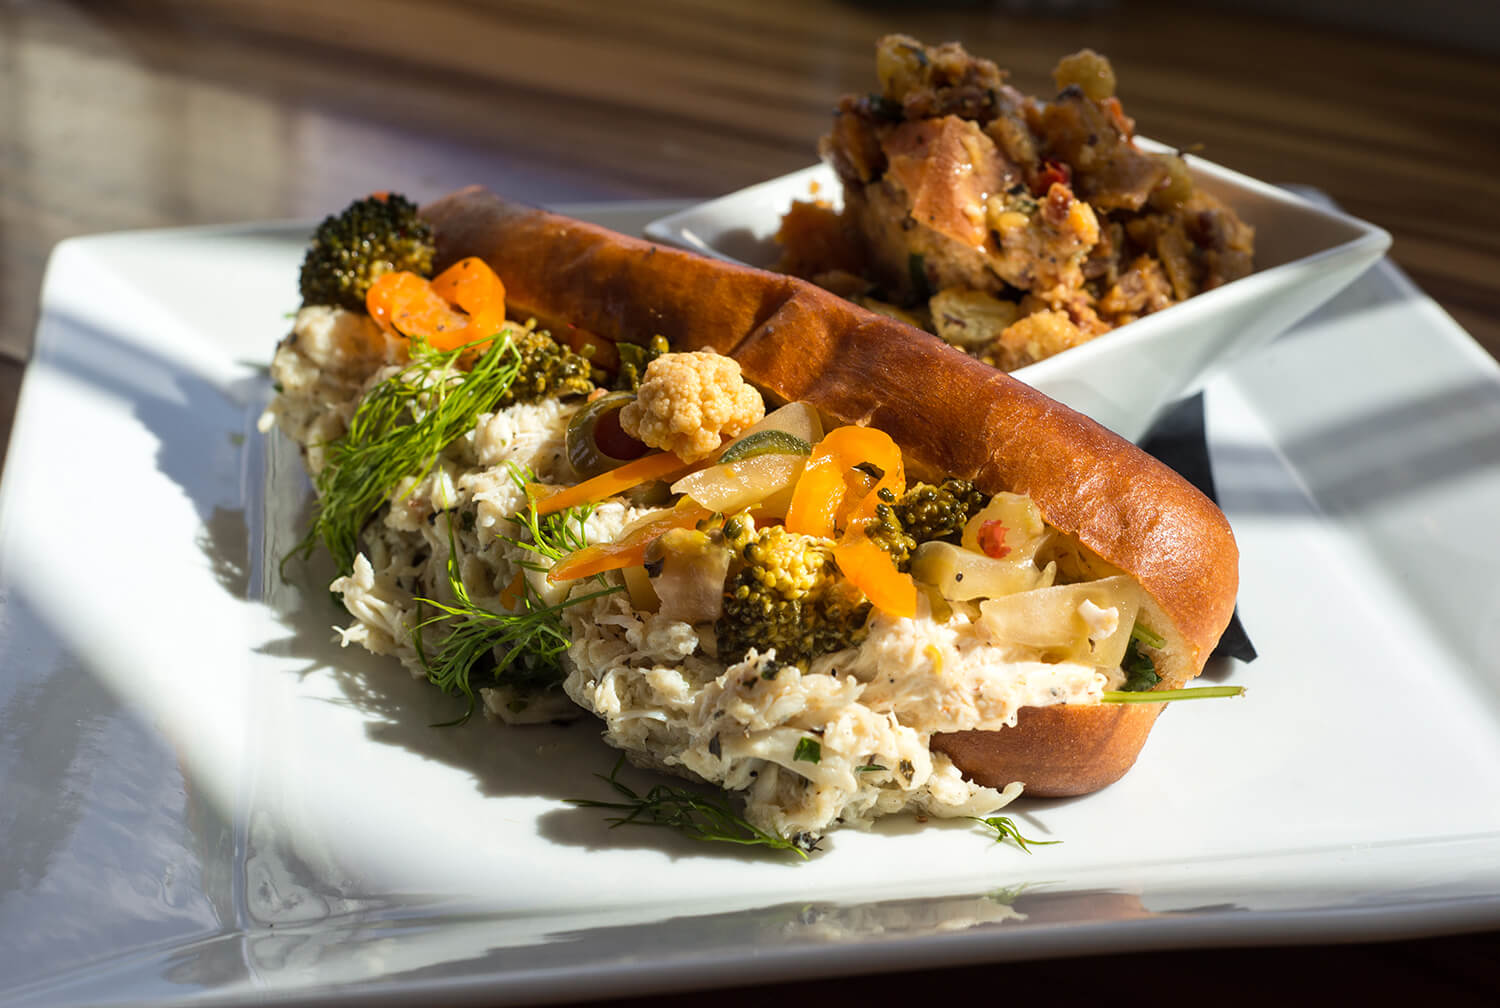 A buttery brioche roll is topped with lump crab, made bright by spiced lemon mayonnaise.